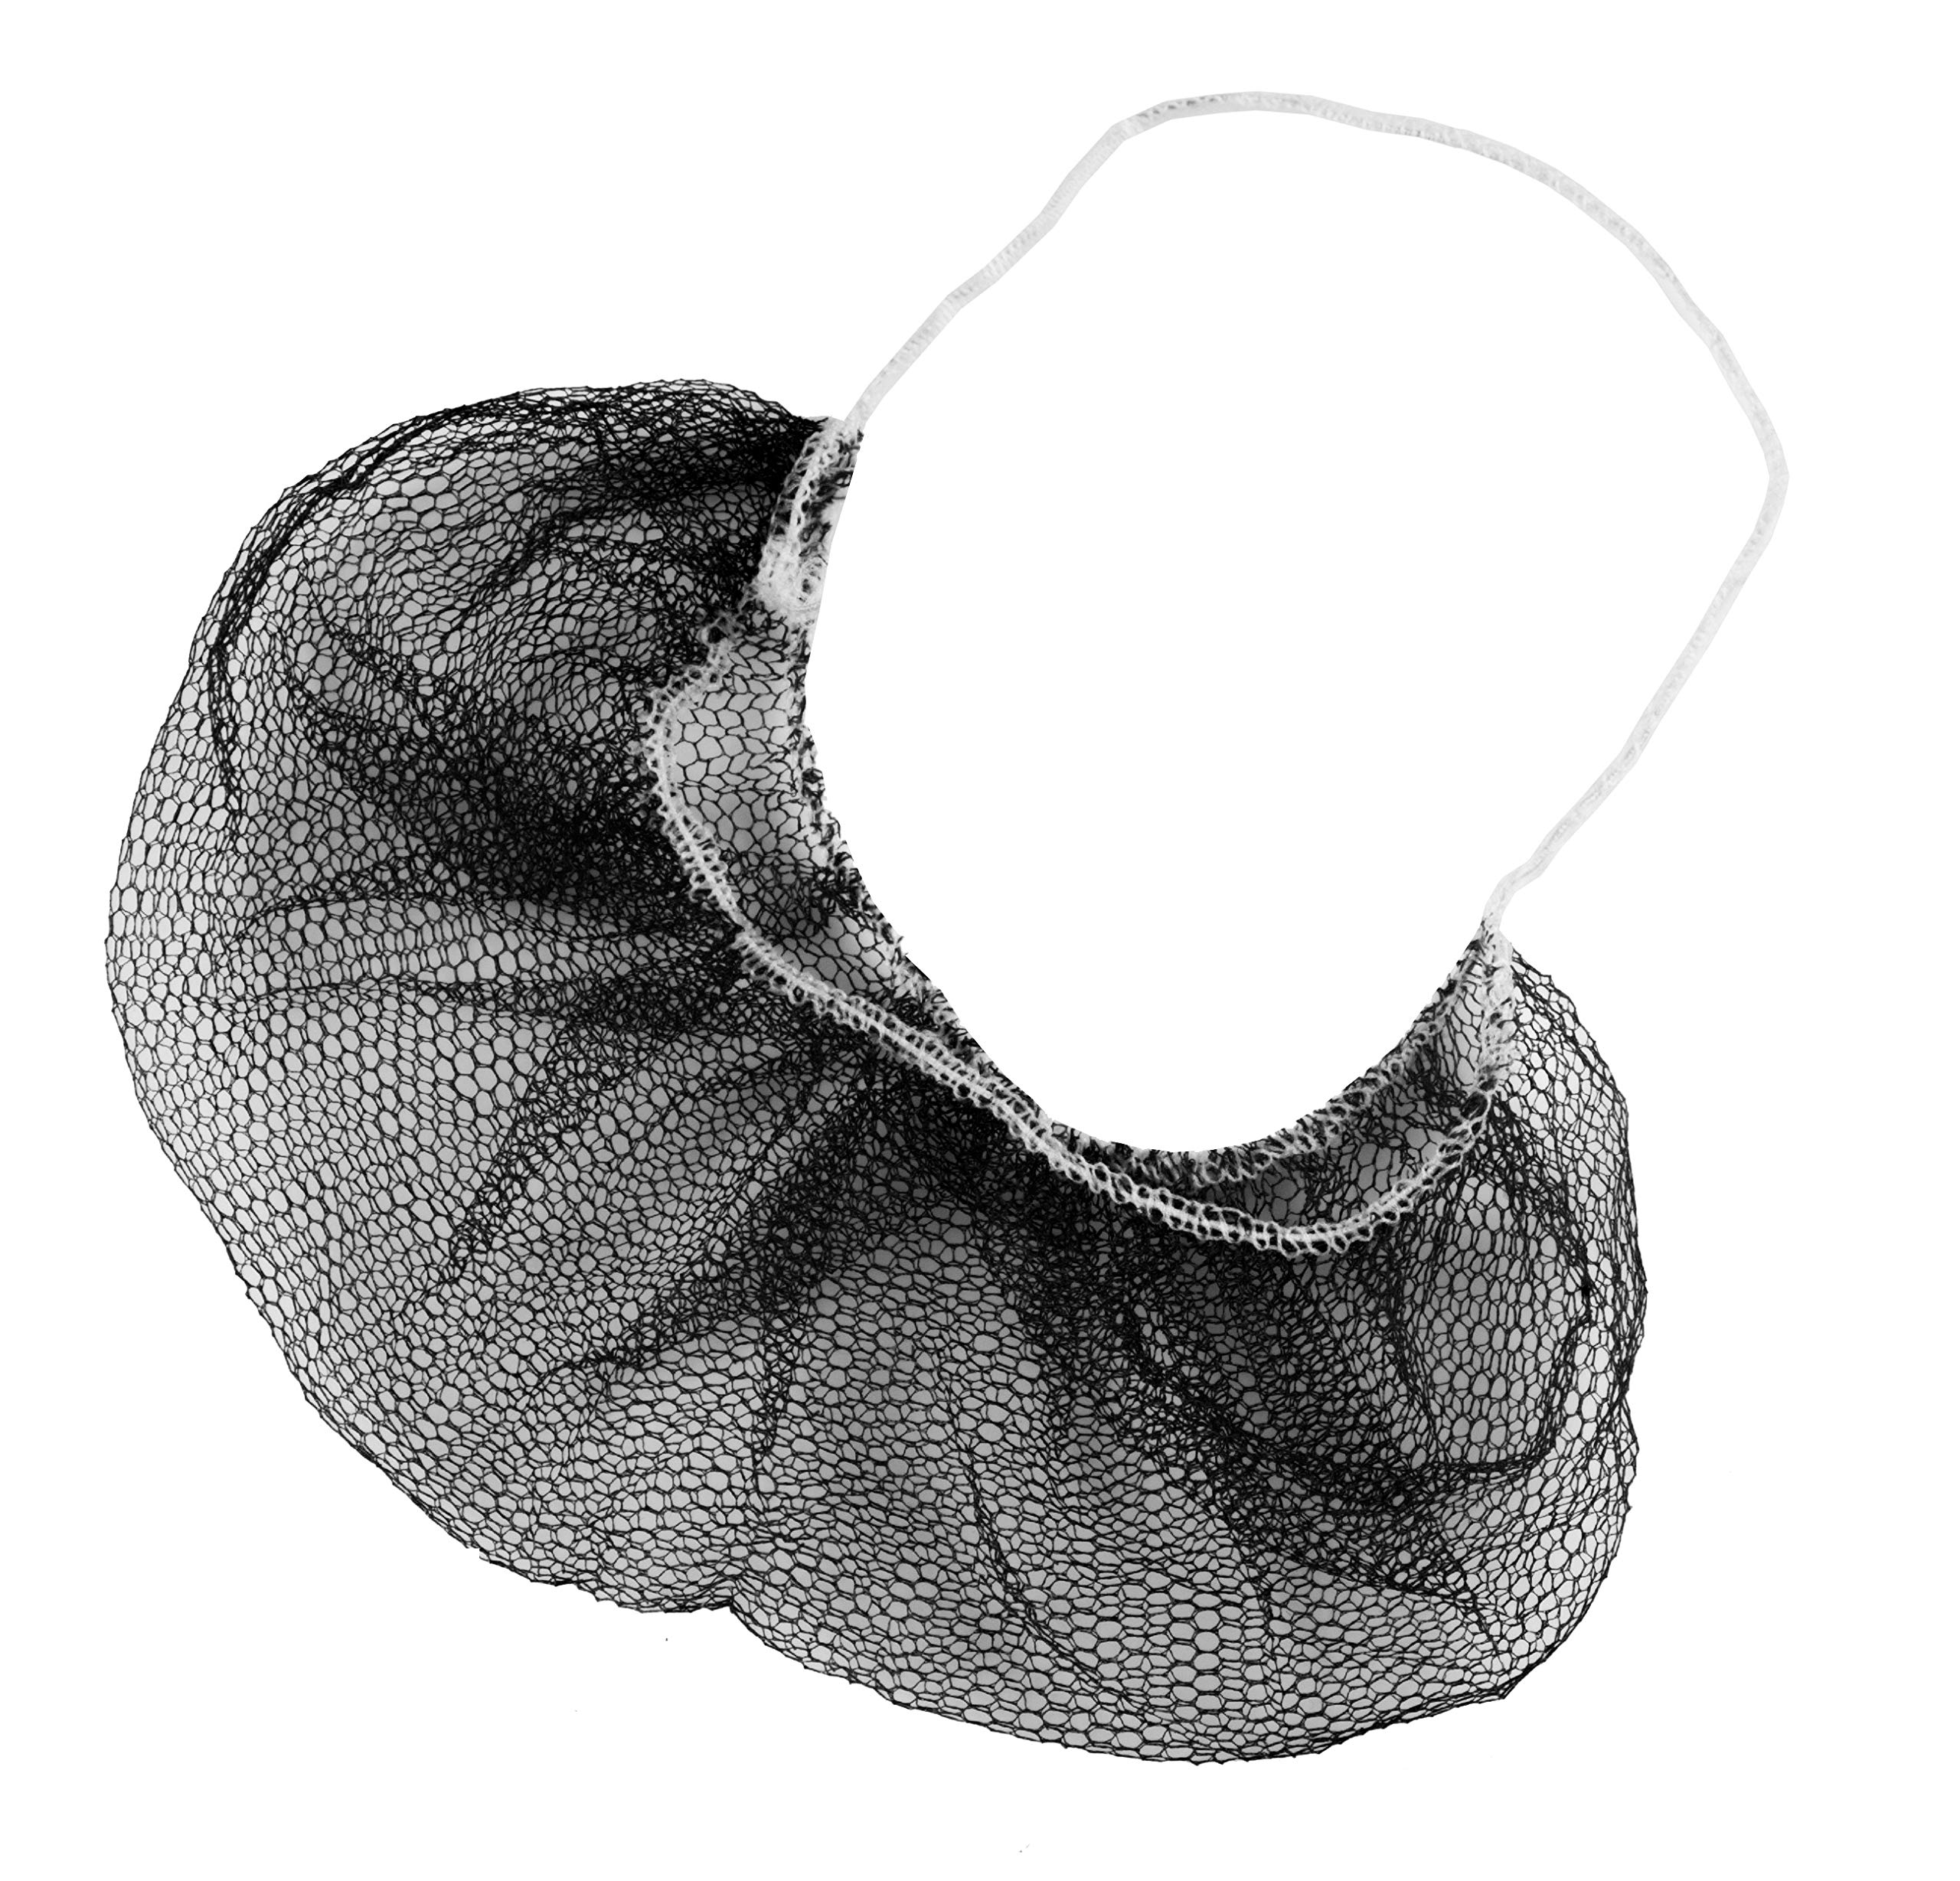 ABC 100 Pack of Disposable Soft Nylon Beard Covers 18''. Brown beard guards. Premium Quality beard net protectors. Honeycomb beard nets. Facial hair covering. Breathable & Lightweight. Wholesale. by ABC Pack & Supply